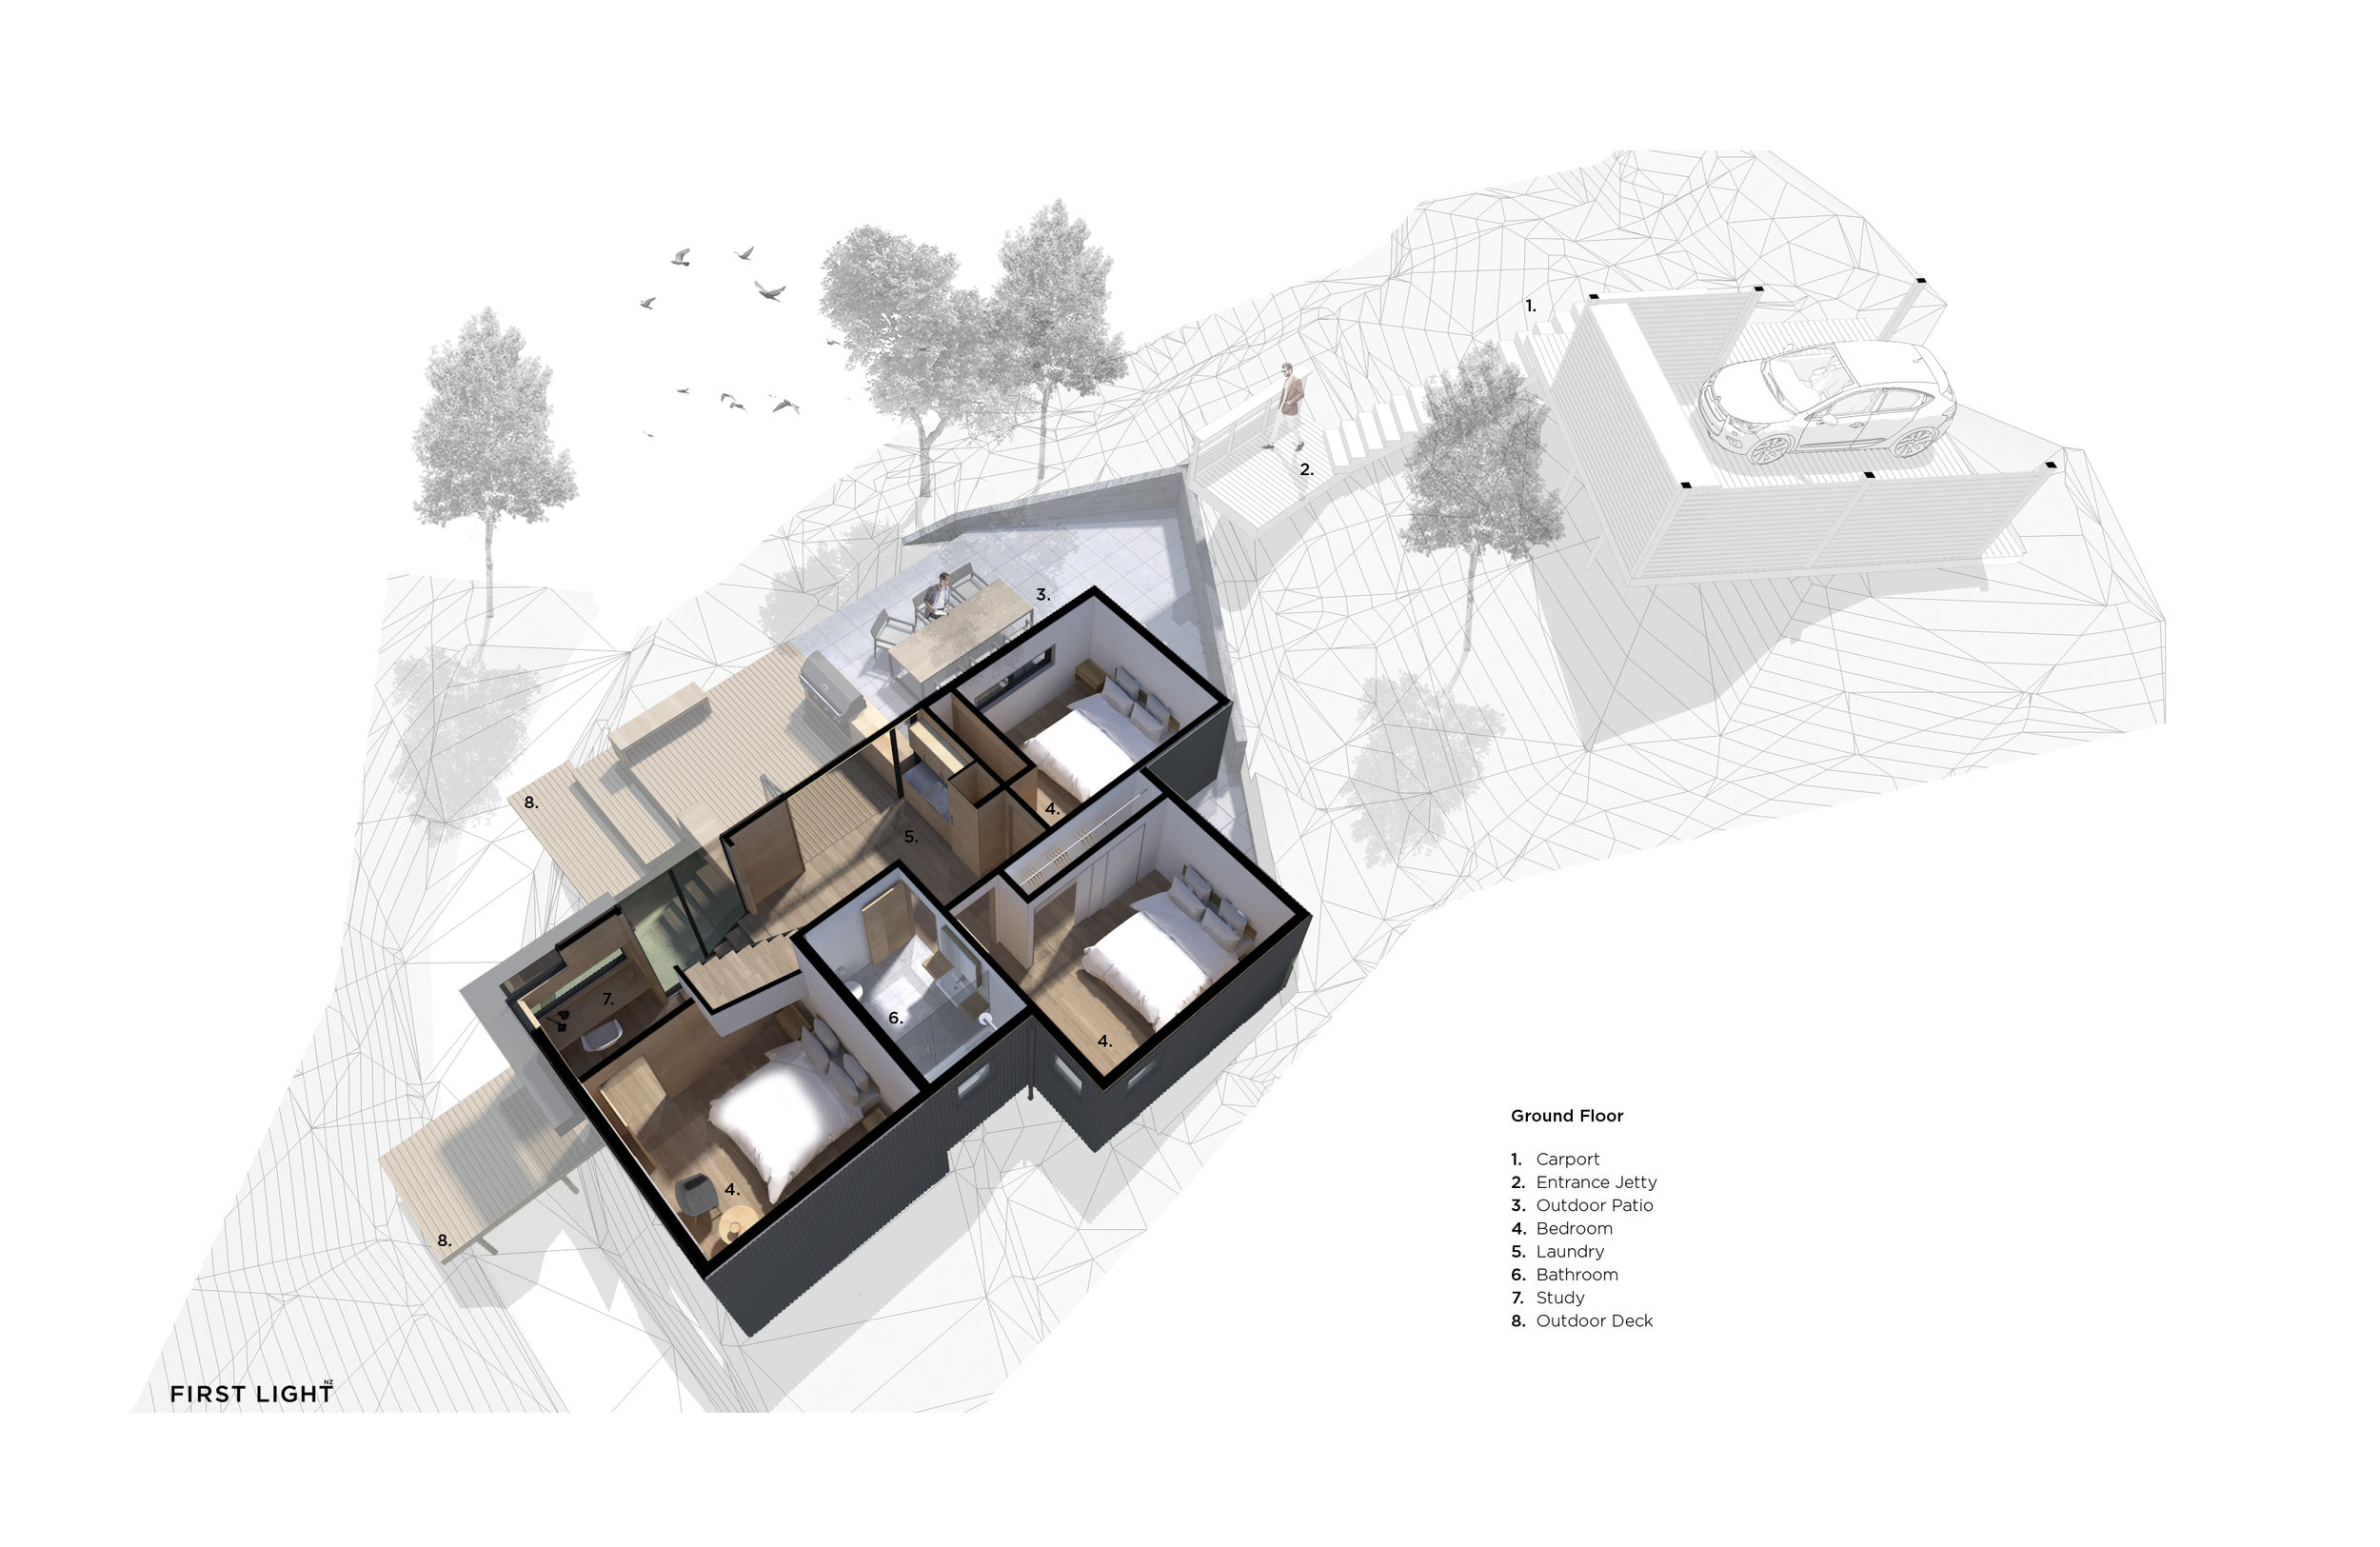 Perspective Plan - Ground Floor